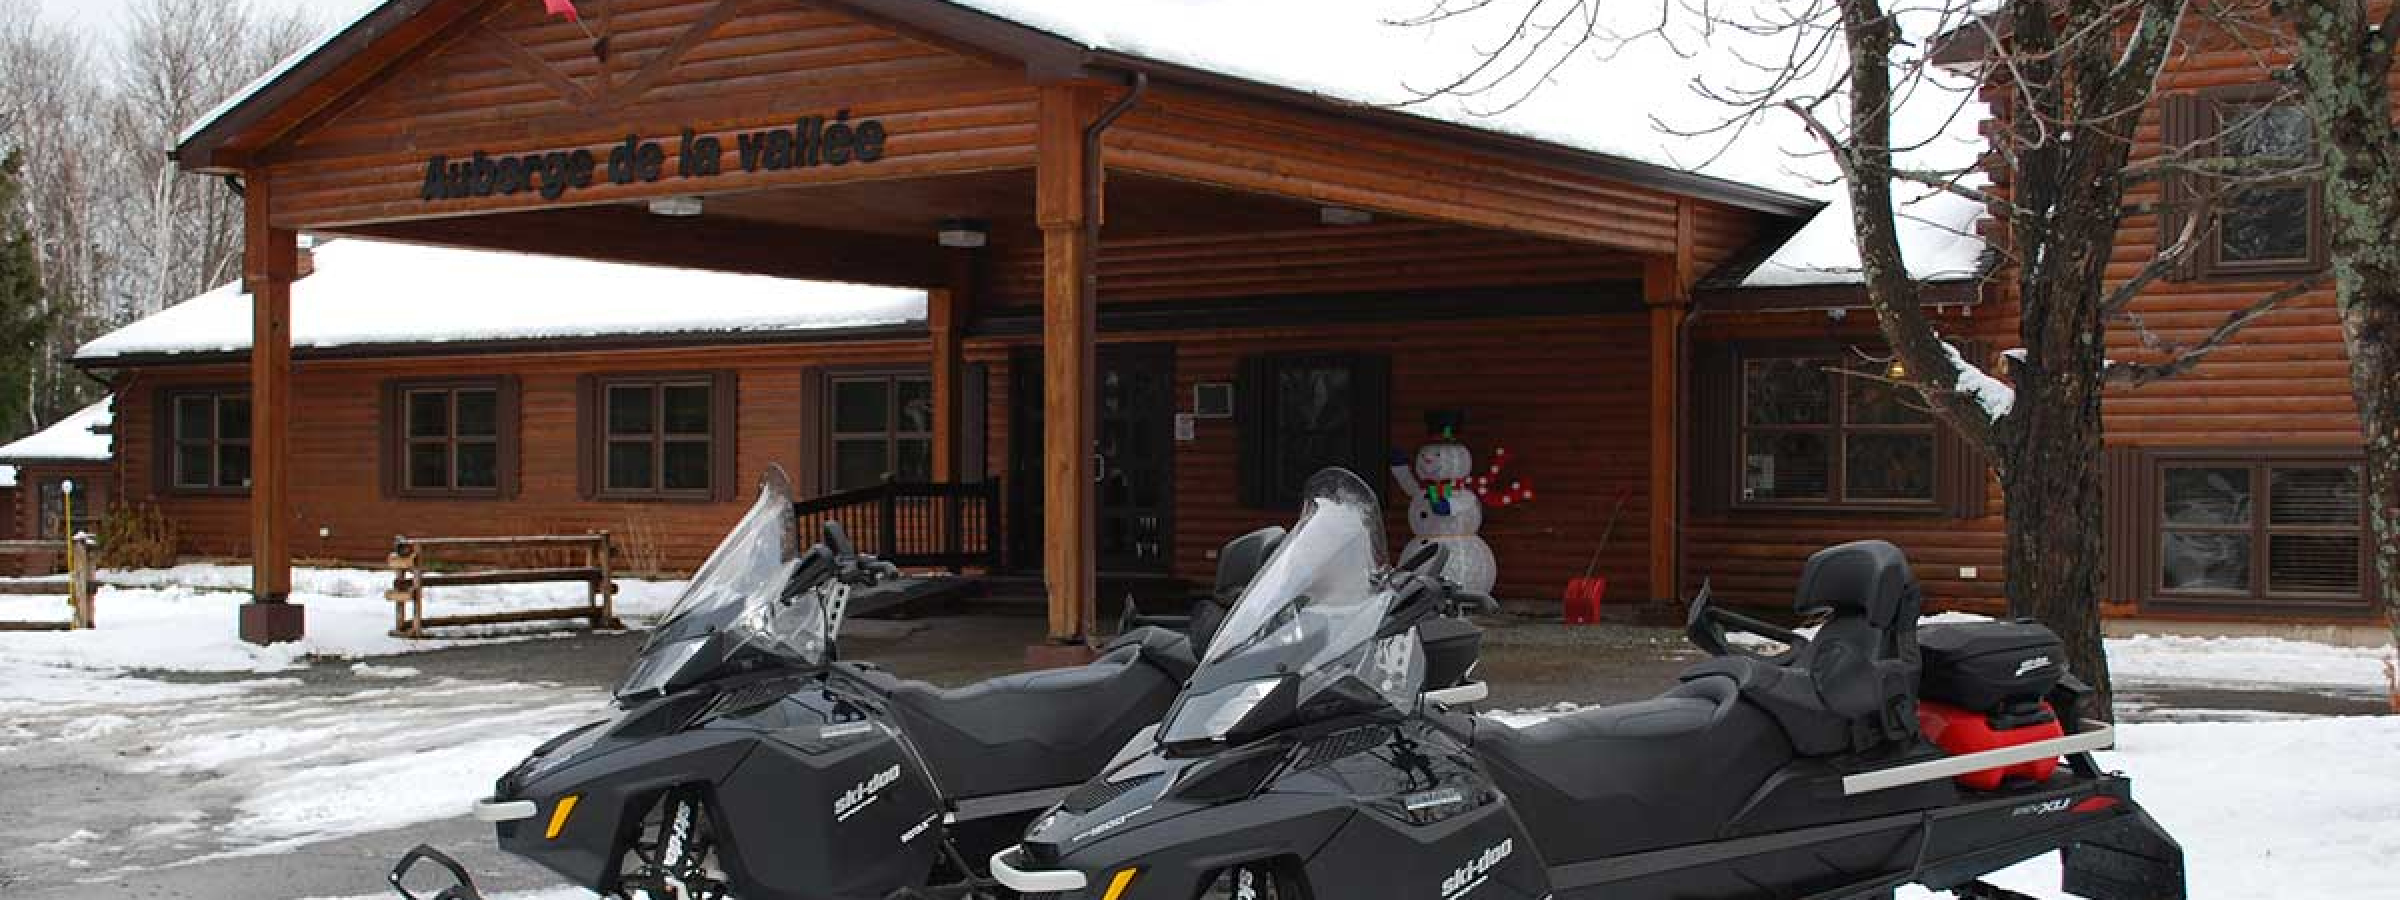 Auberge de La Vallee - Truck and trailer or private shuttle from KC Irving Regional Centre506 549-4100